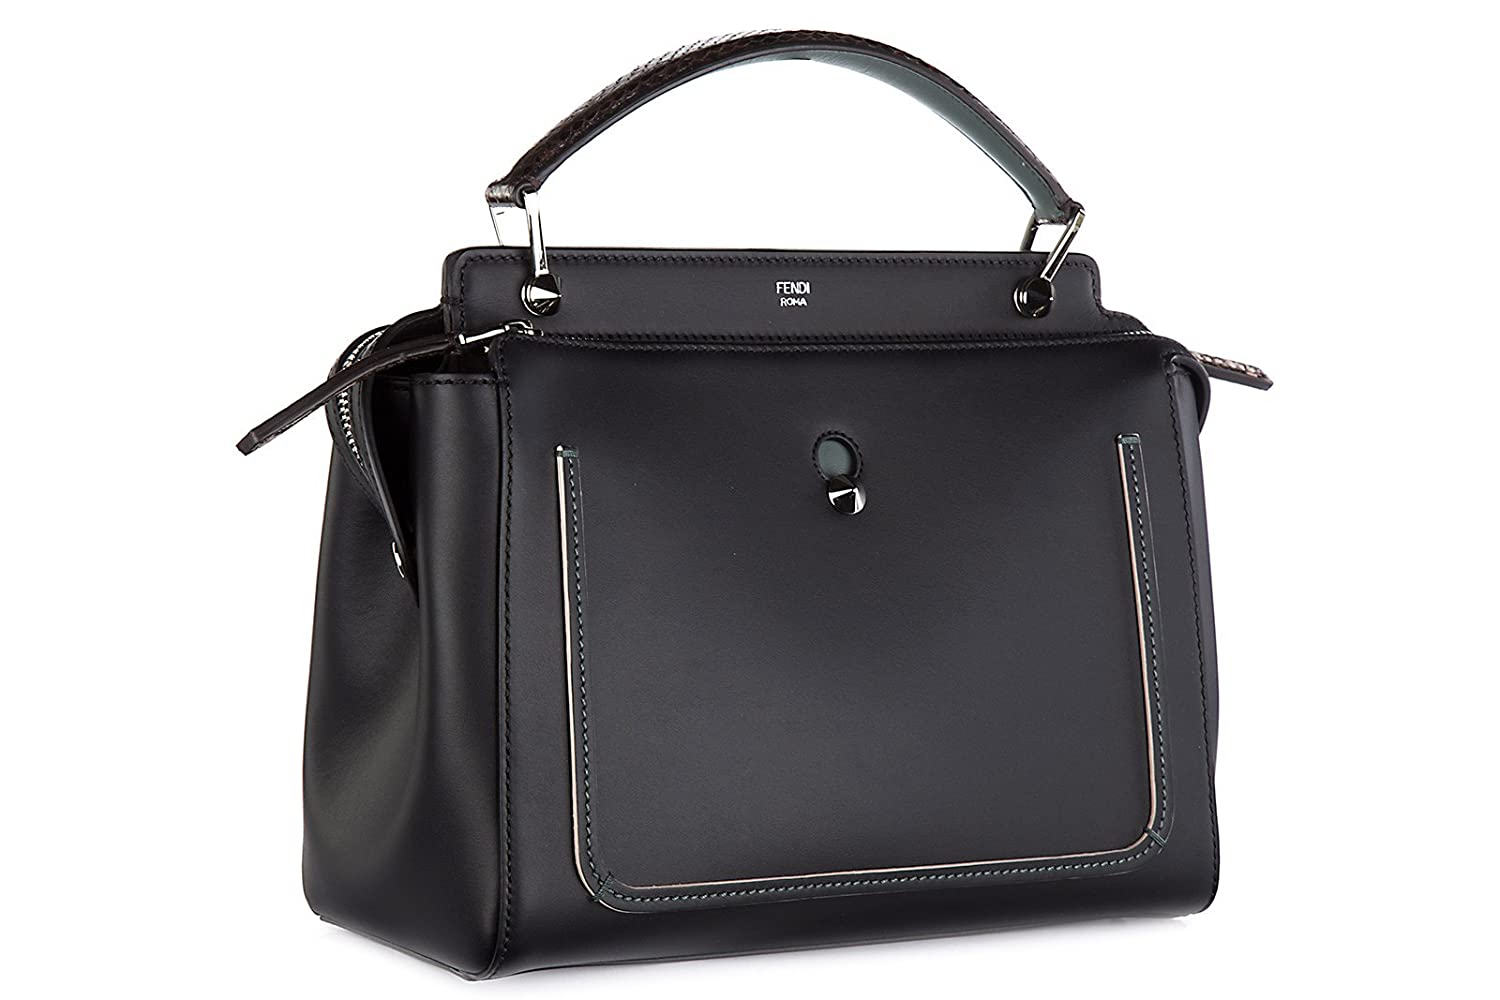 Fendi women s leather handbag shopping bag purse dotcom black  Handbags   Amazon.com e98f5d4972fb3